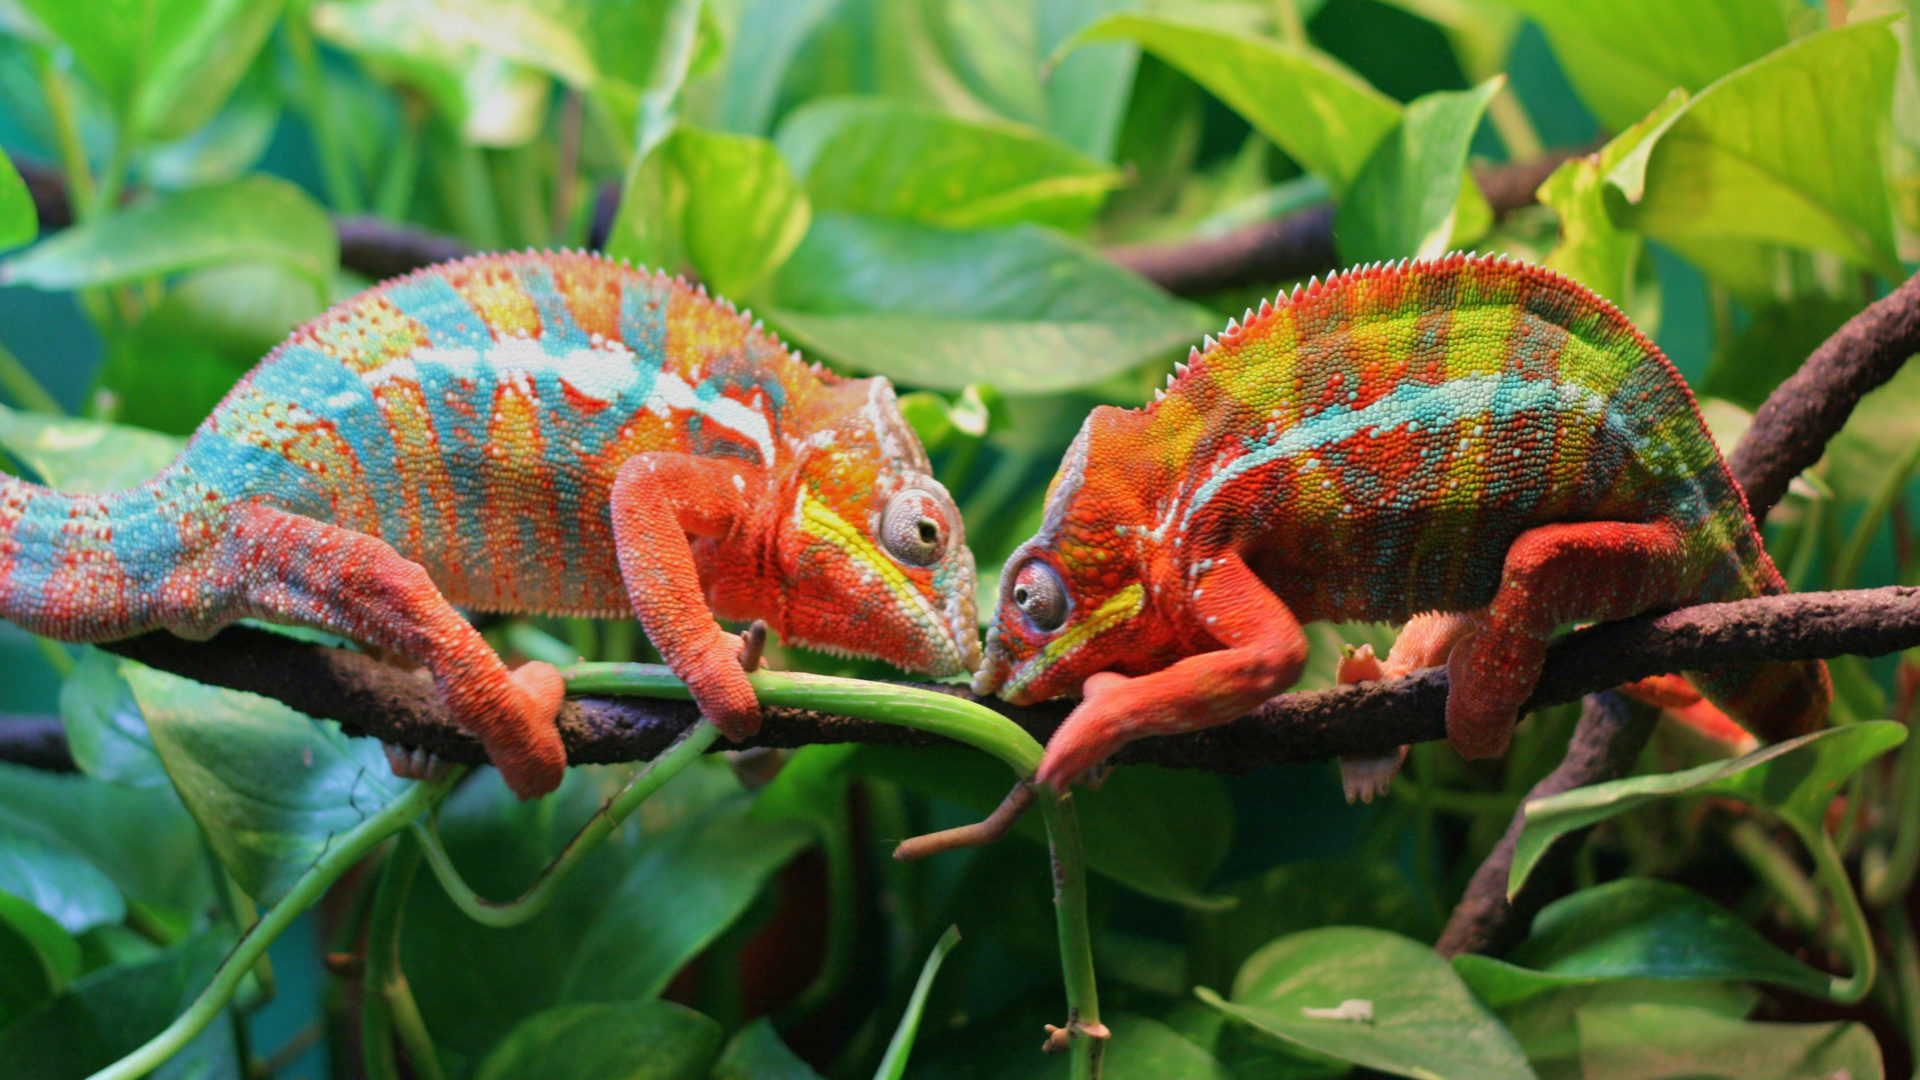 How To Make A Gif Your Wallpaper Iphone Chameleon Striped Lizard Camouflage By Changing The Color